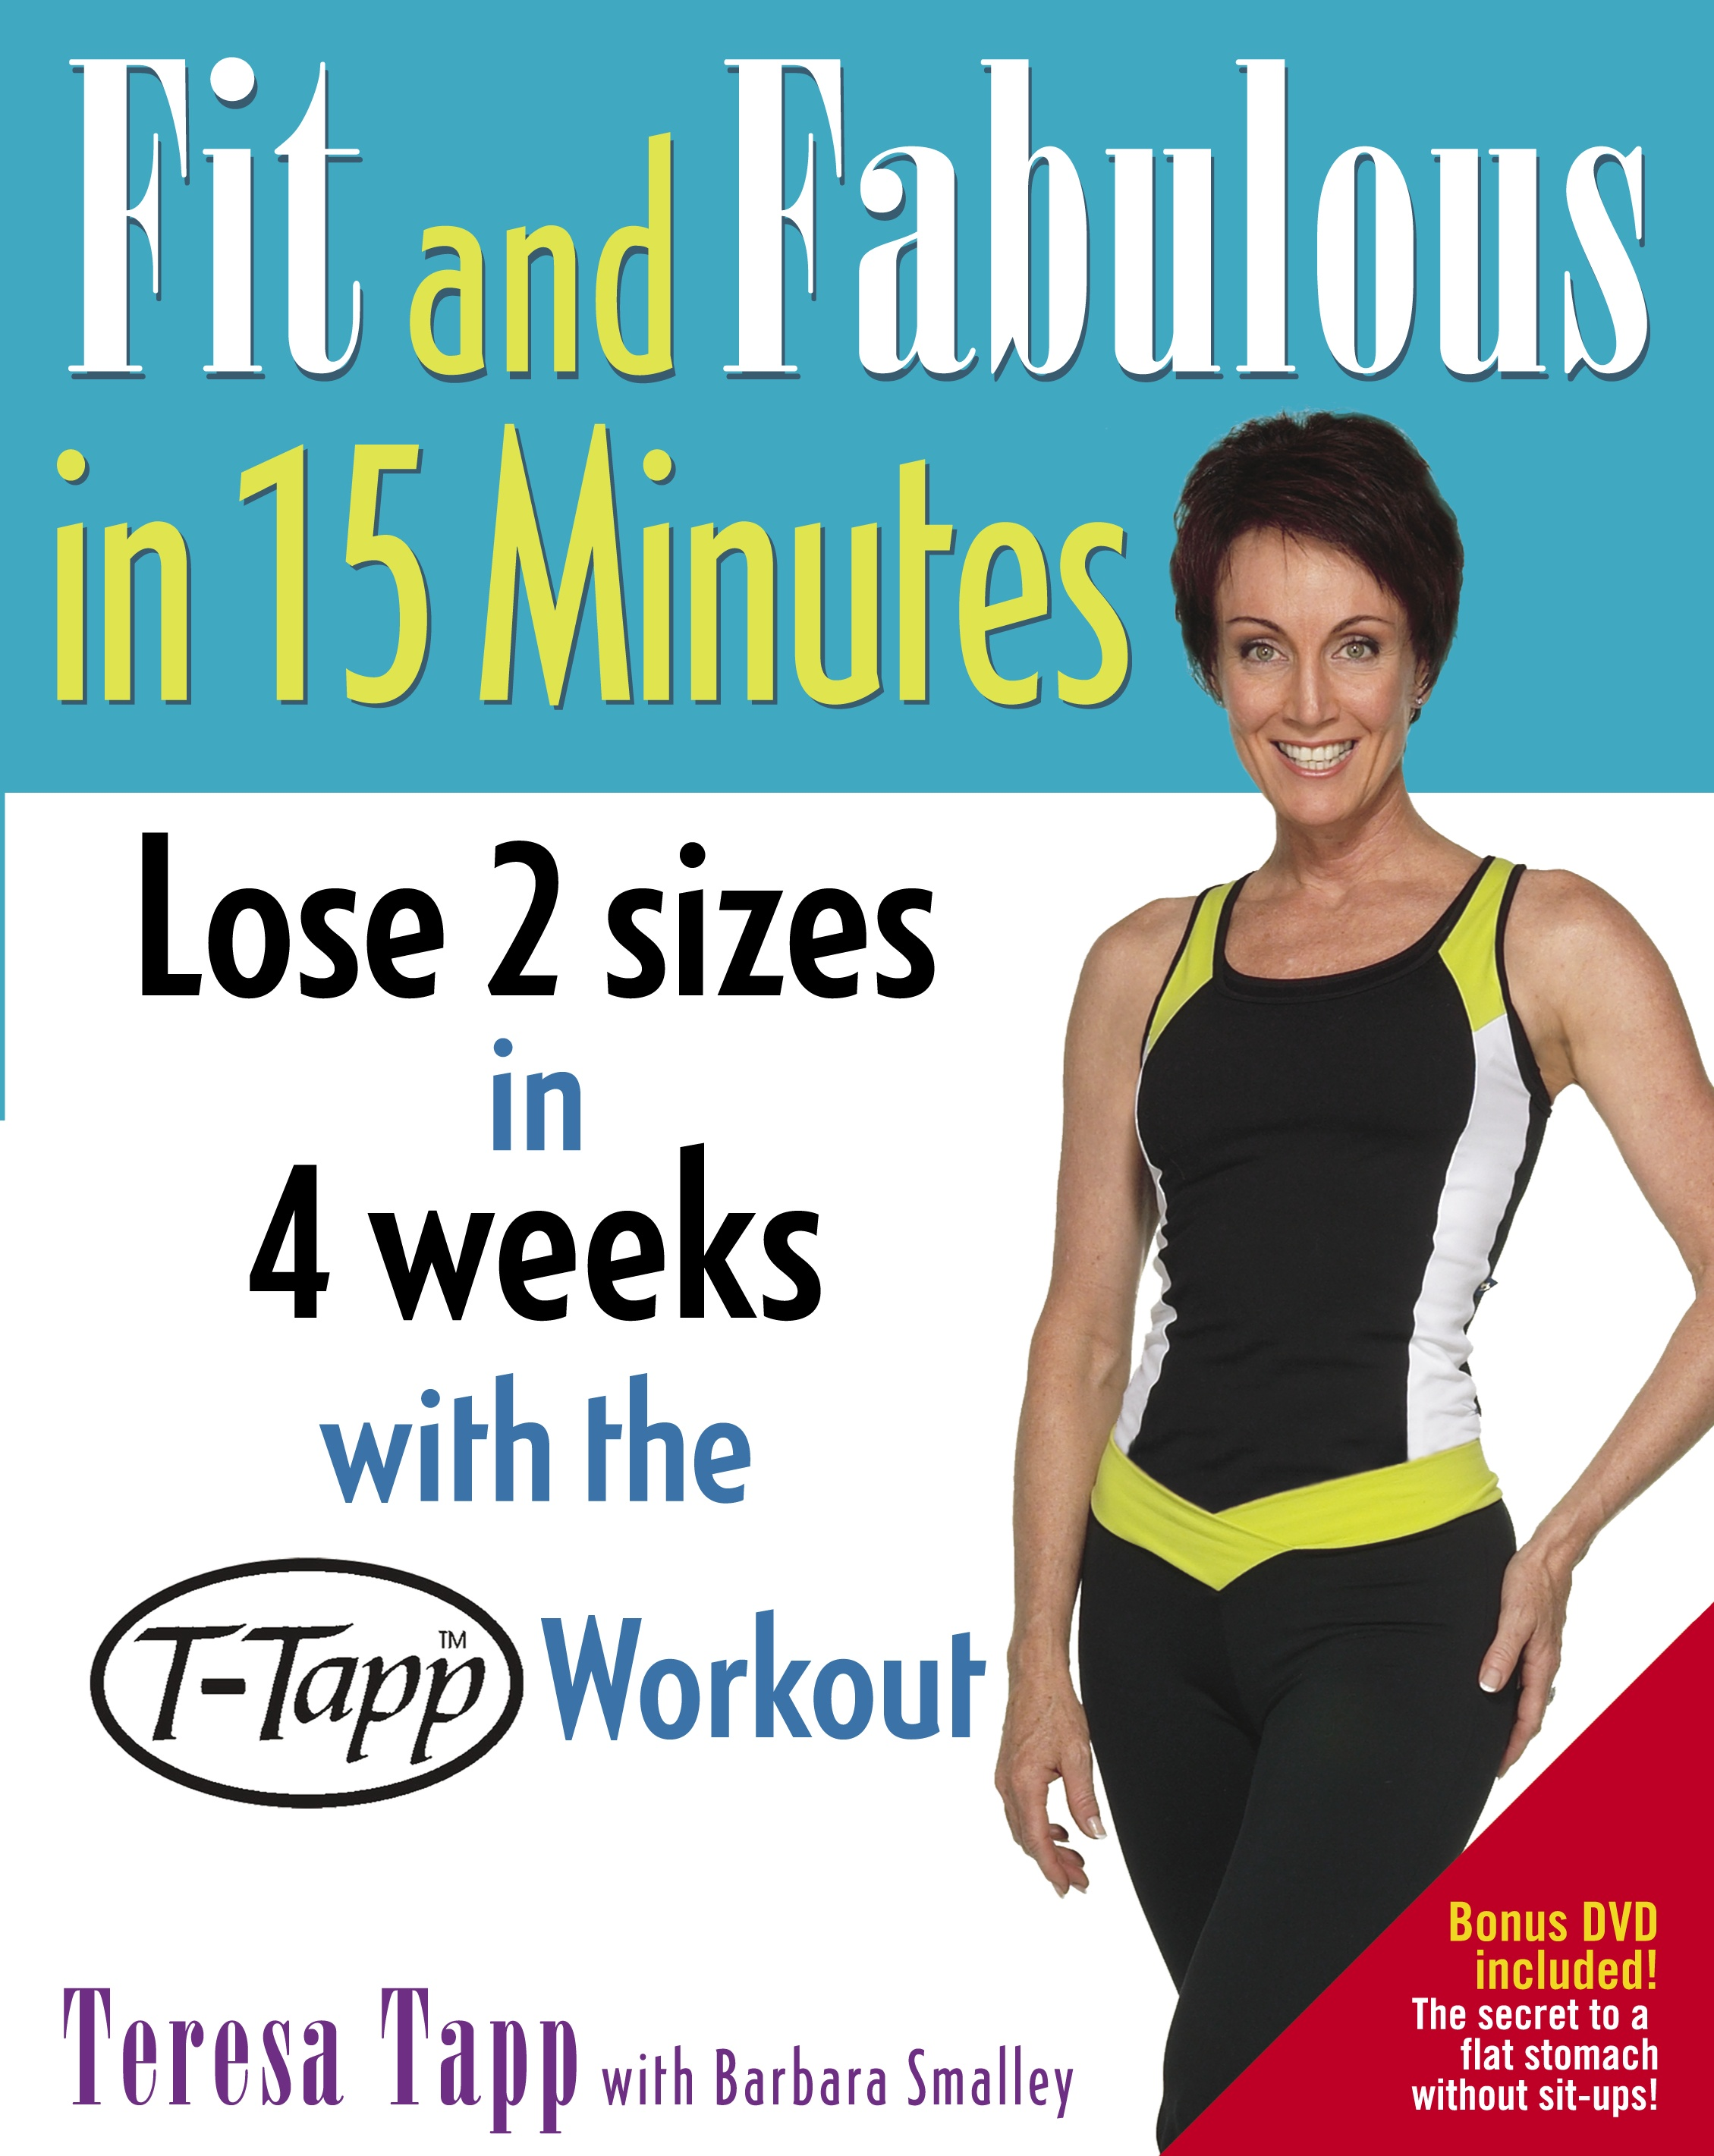 Fit and Fabulous in 15 Minutes Review | Oh Sweet Mercy #ttapp #exercise #reviews #ohsweetmercy